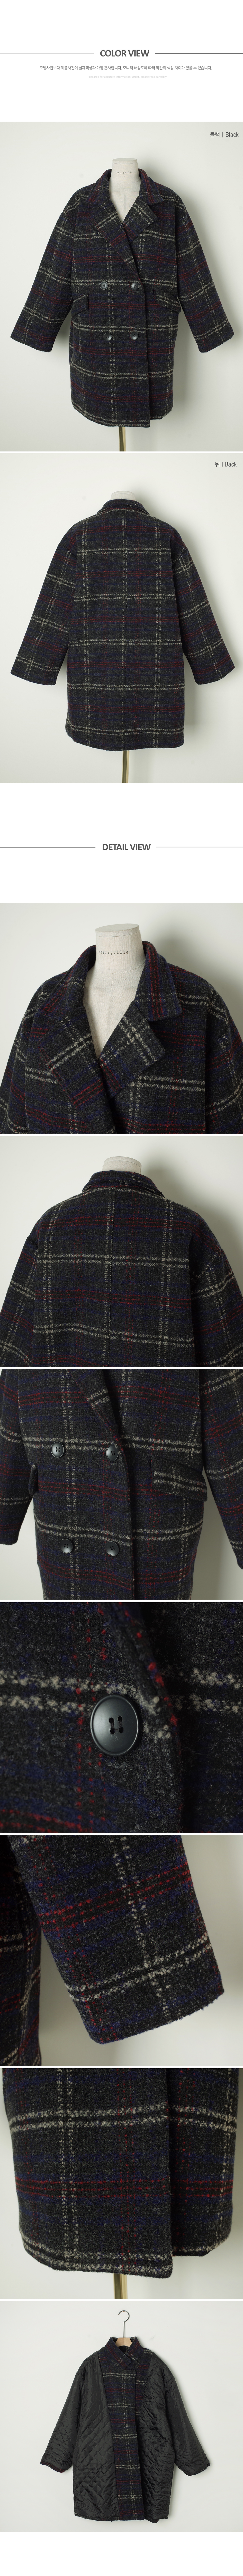 Warm loose fit check lining quilted coat